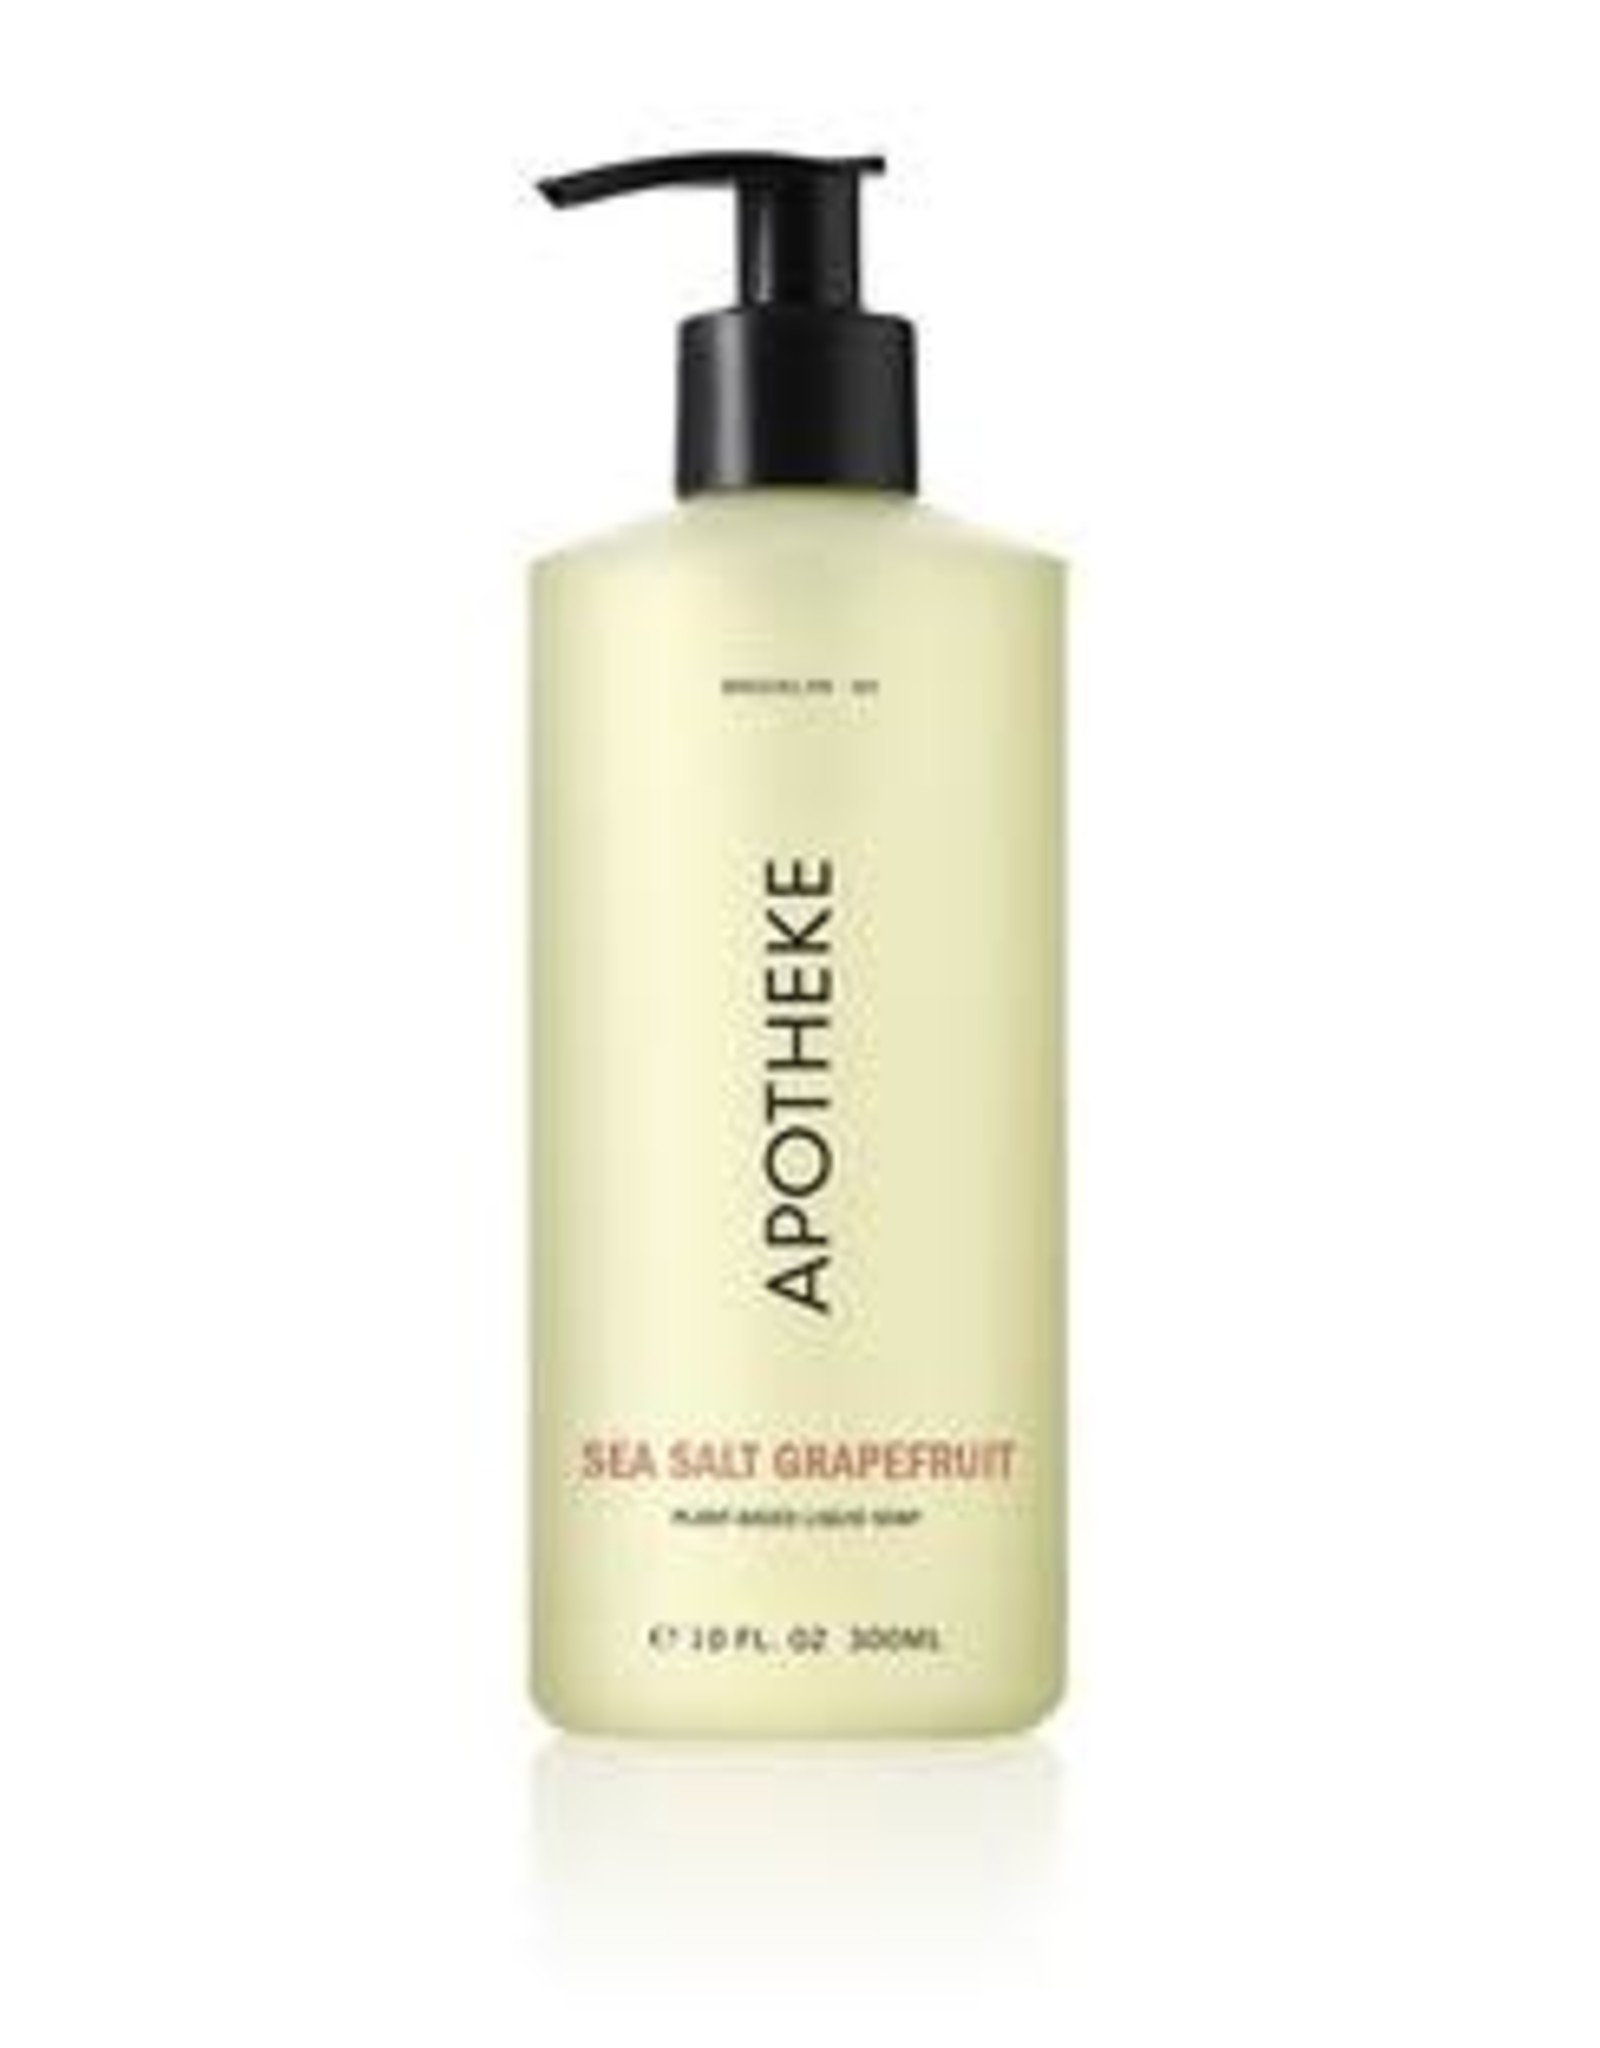 Apotheke Apotheke Sea Salt Grapefruit Liquid Soap